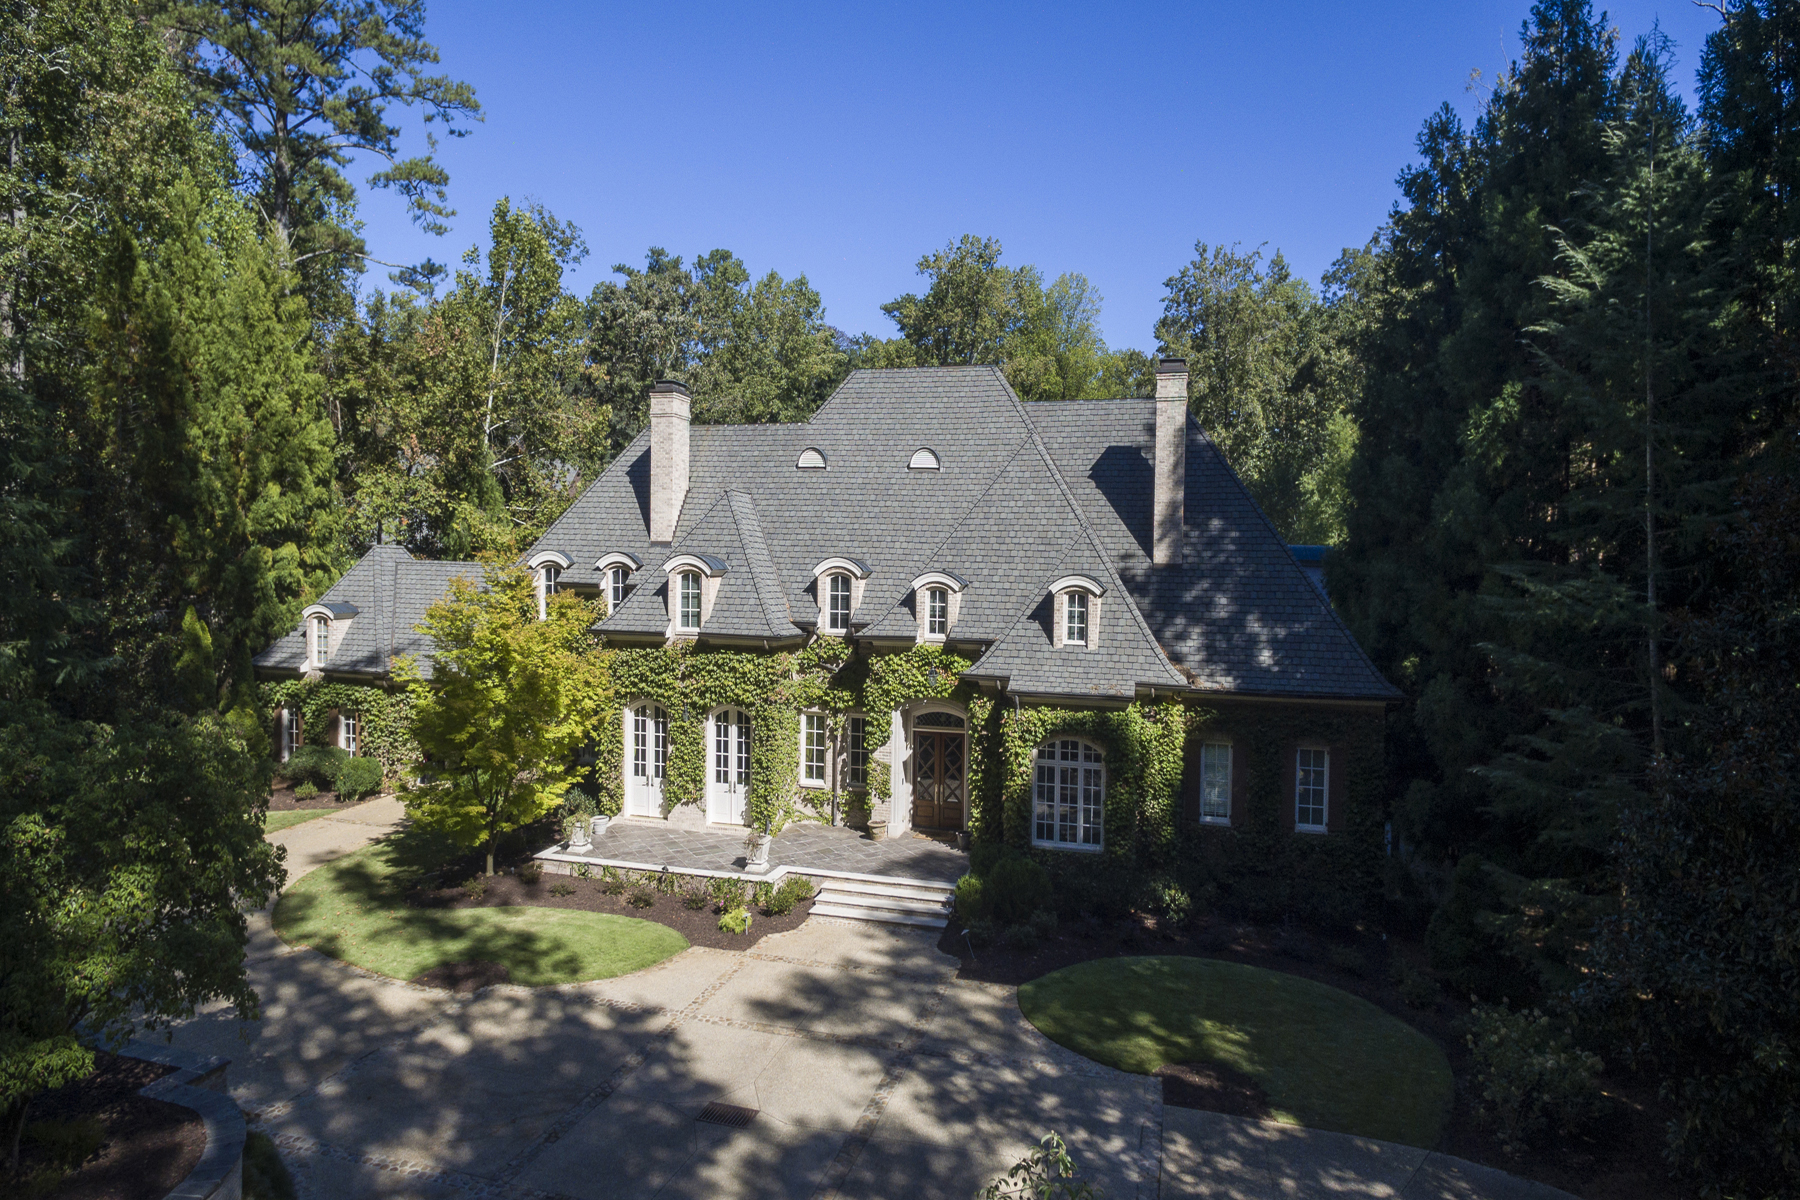 Single Family Home for Sale at Gorgeous Gated Estate Property With Separate Large Guest House 714 W Conway Drive NW Buckhead, Atlanta, Georgia, 30327 United States